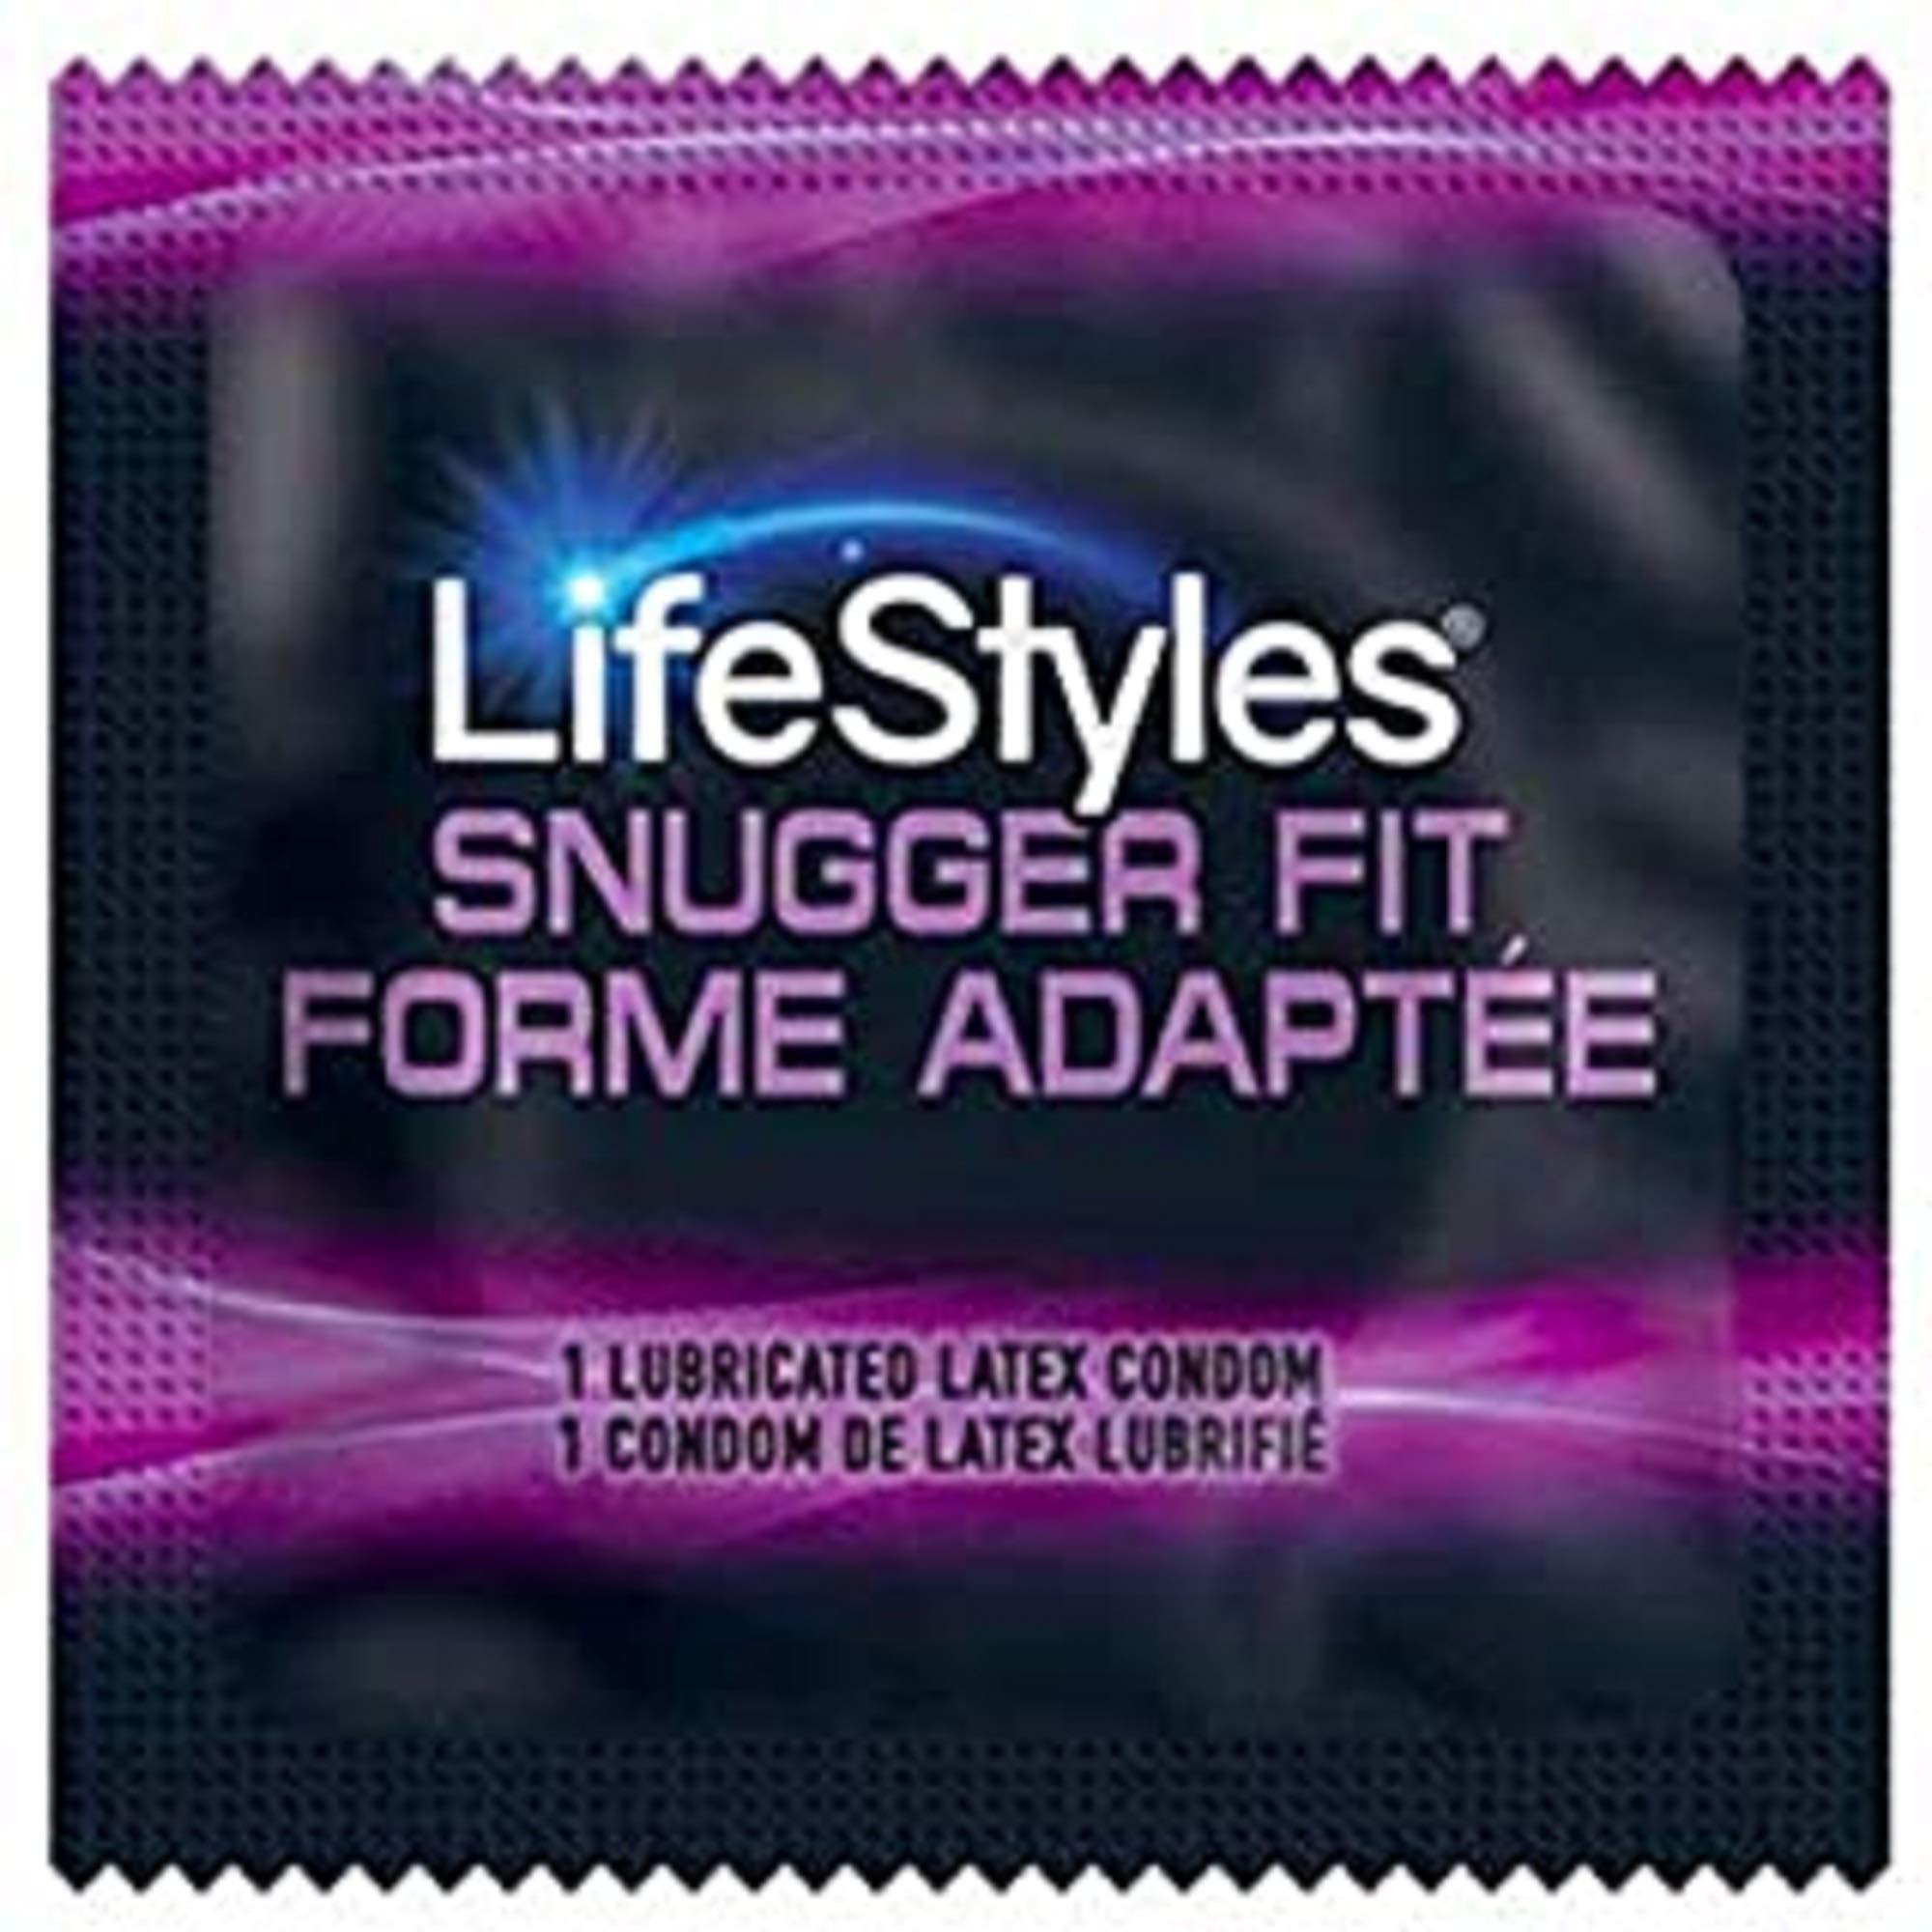 Lifestyles Snugger Fit Condoms. 25 Pieces. Latex, Lubricated